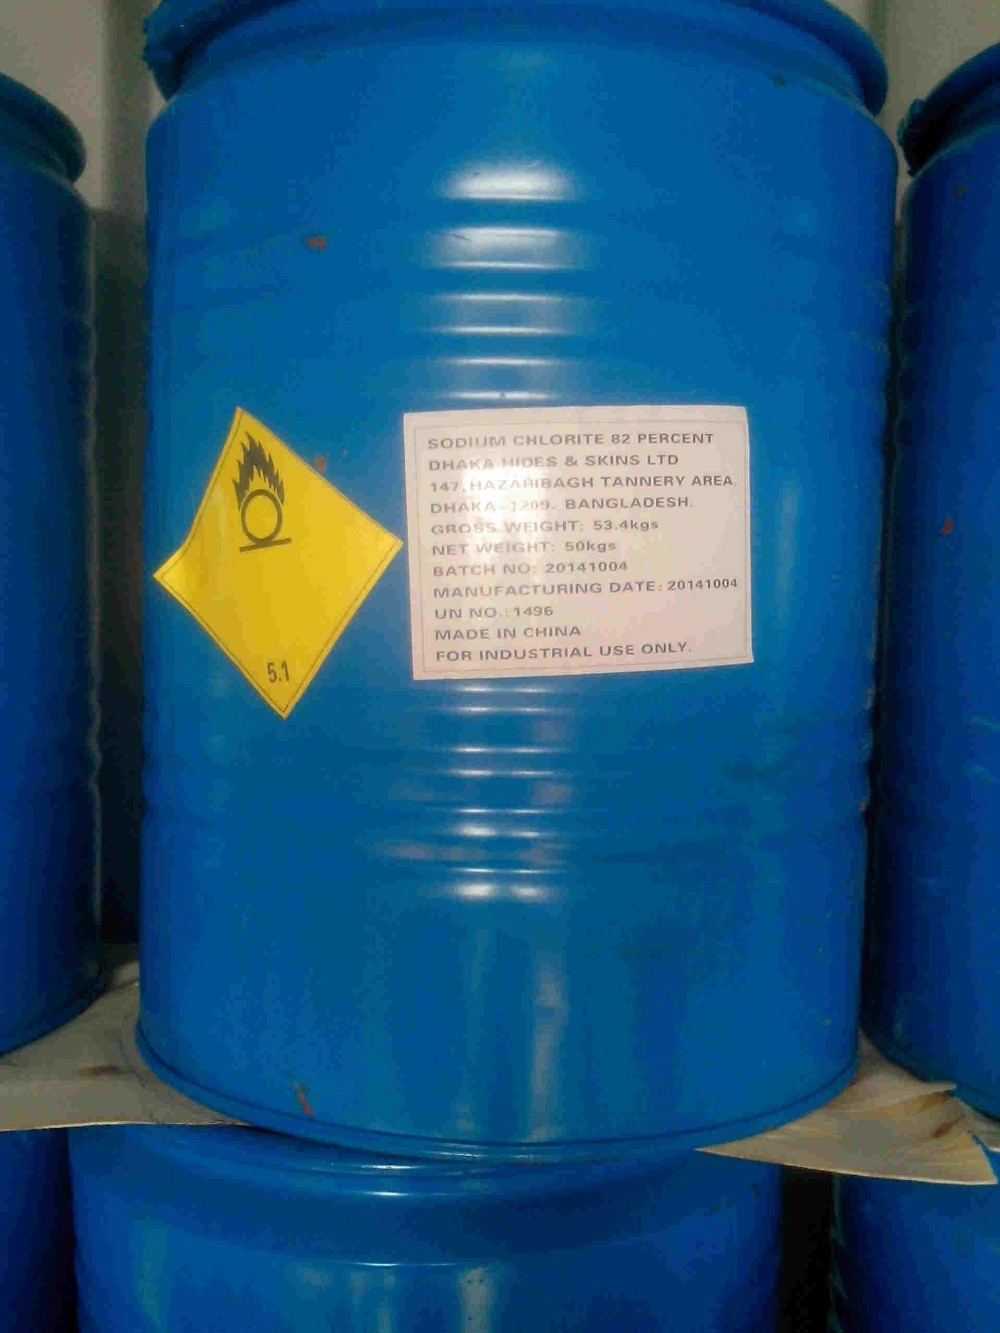 Sodium Chlorite 85% solid in 2017